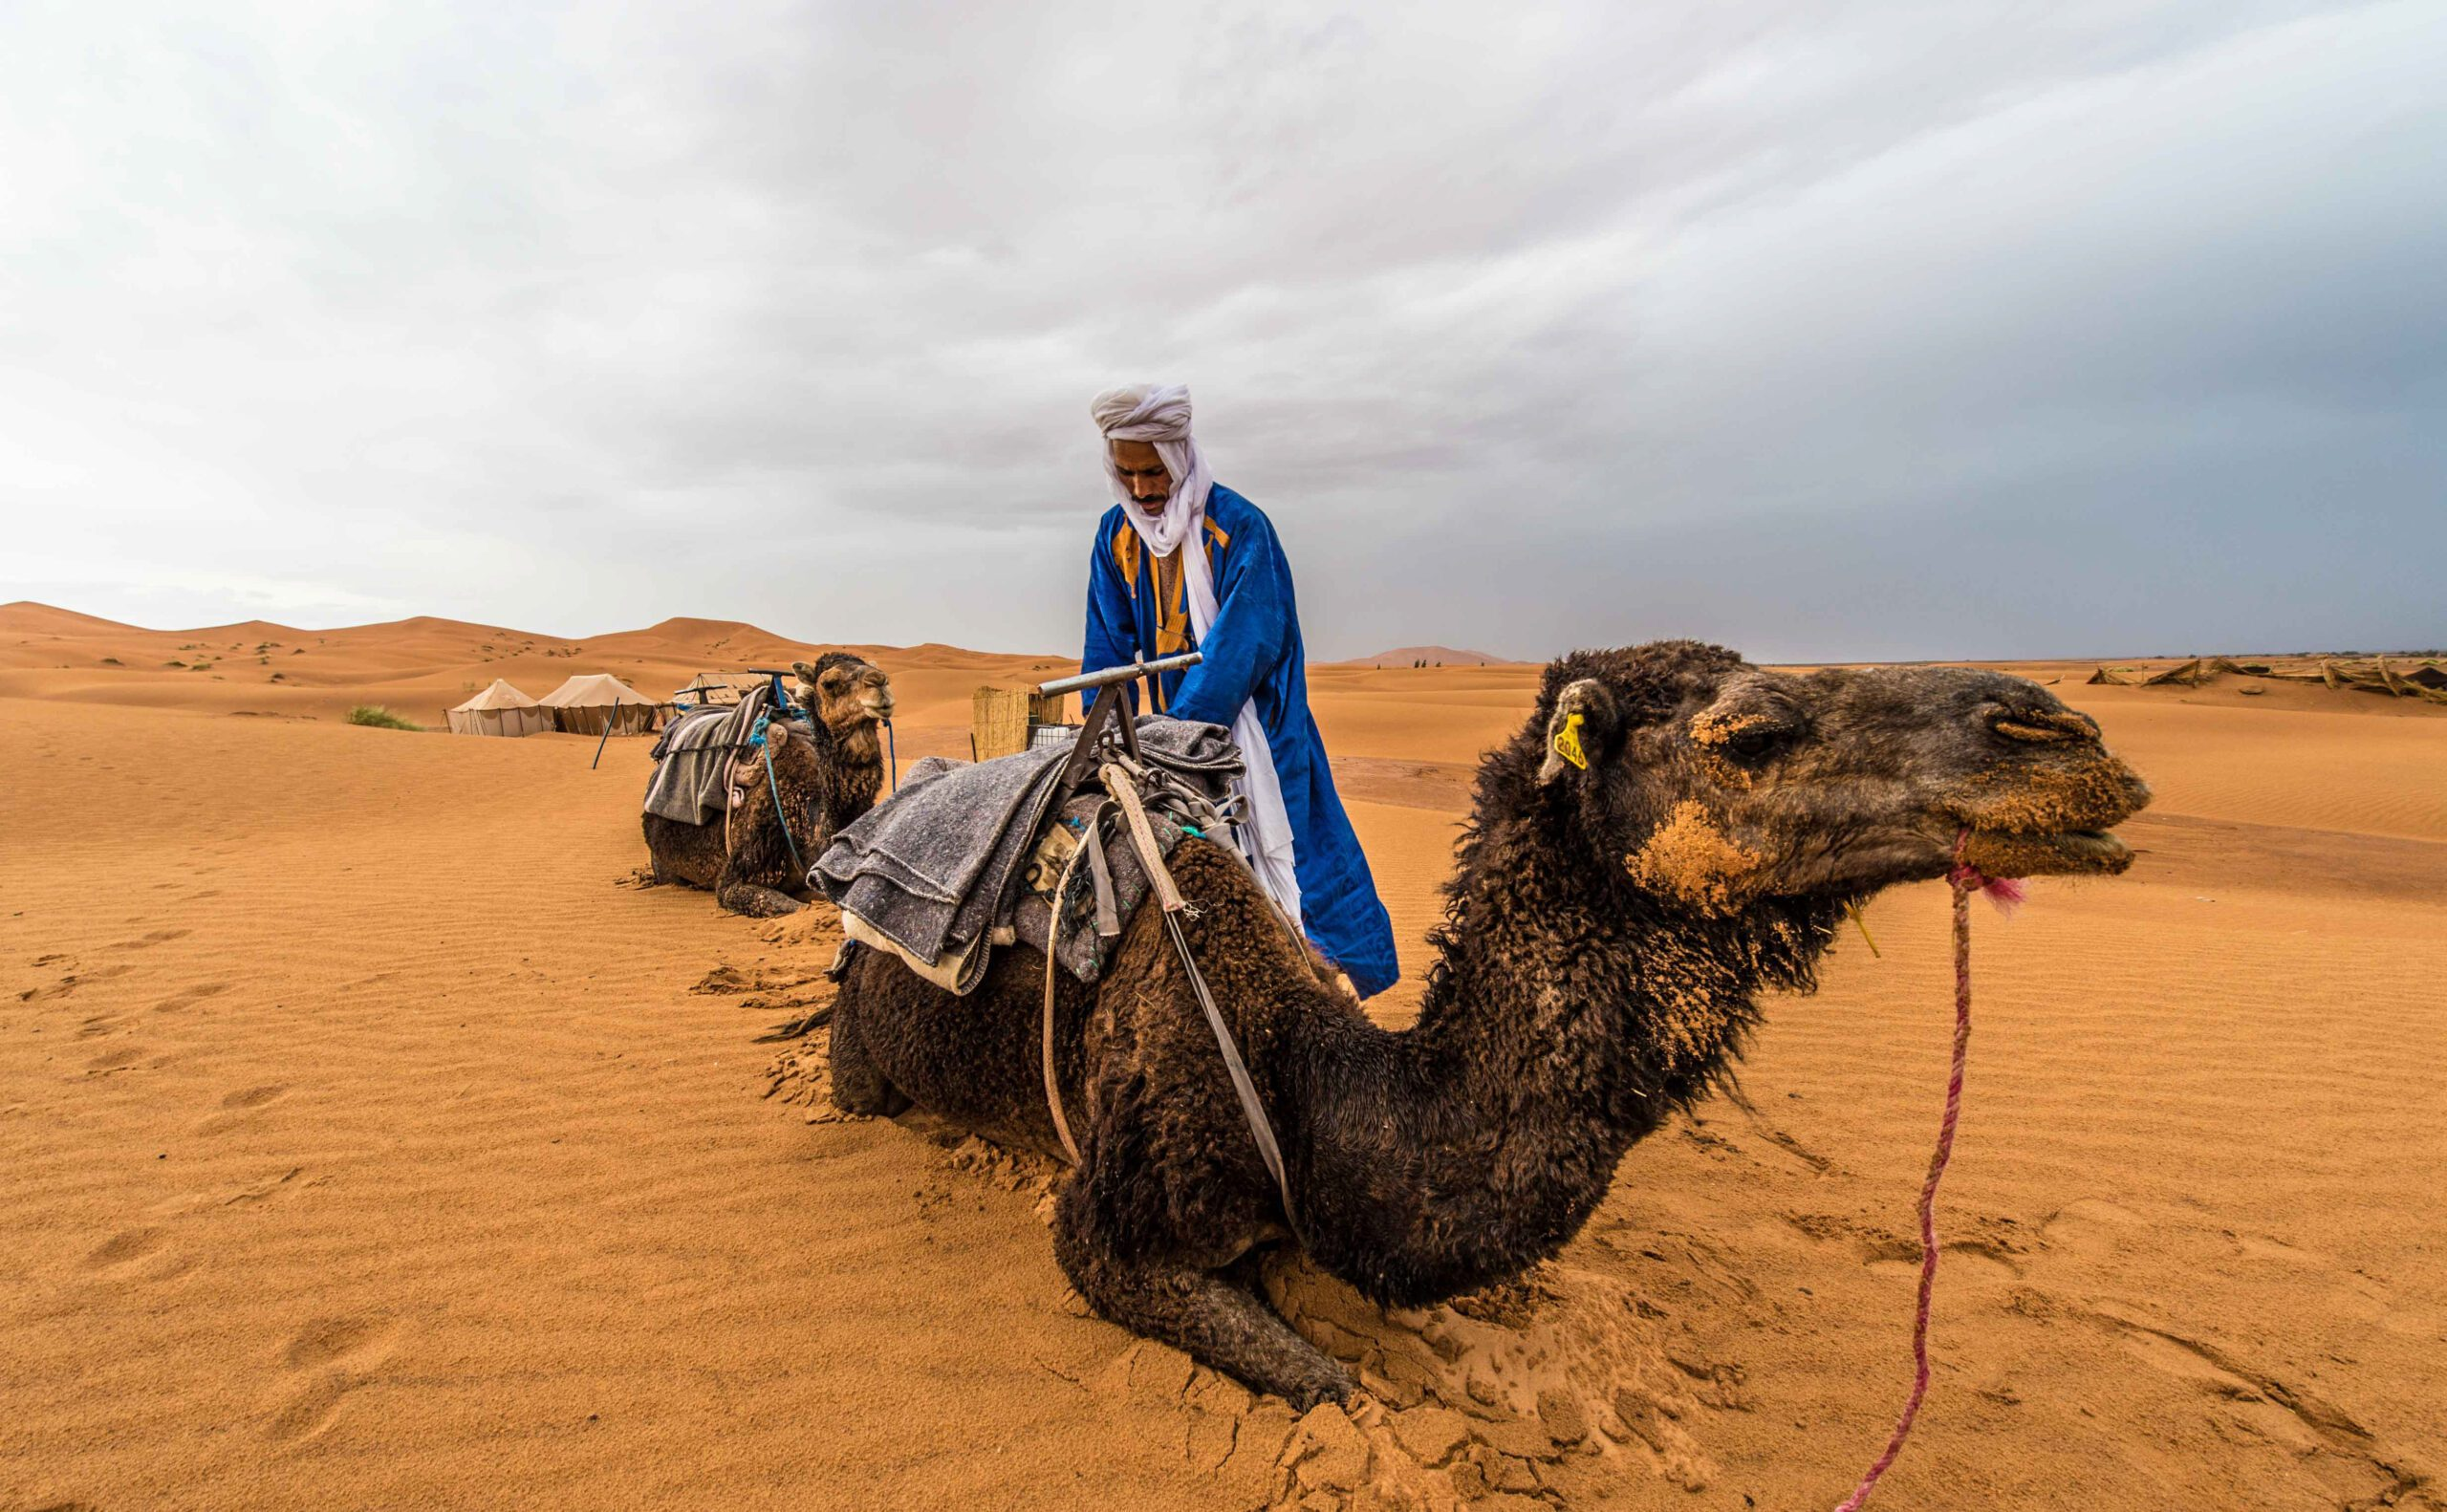 Local man tending to his camel in Sahara